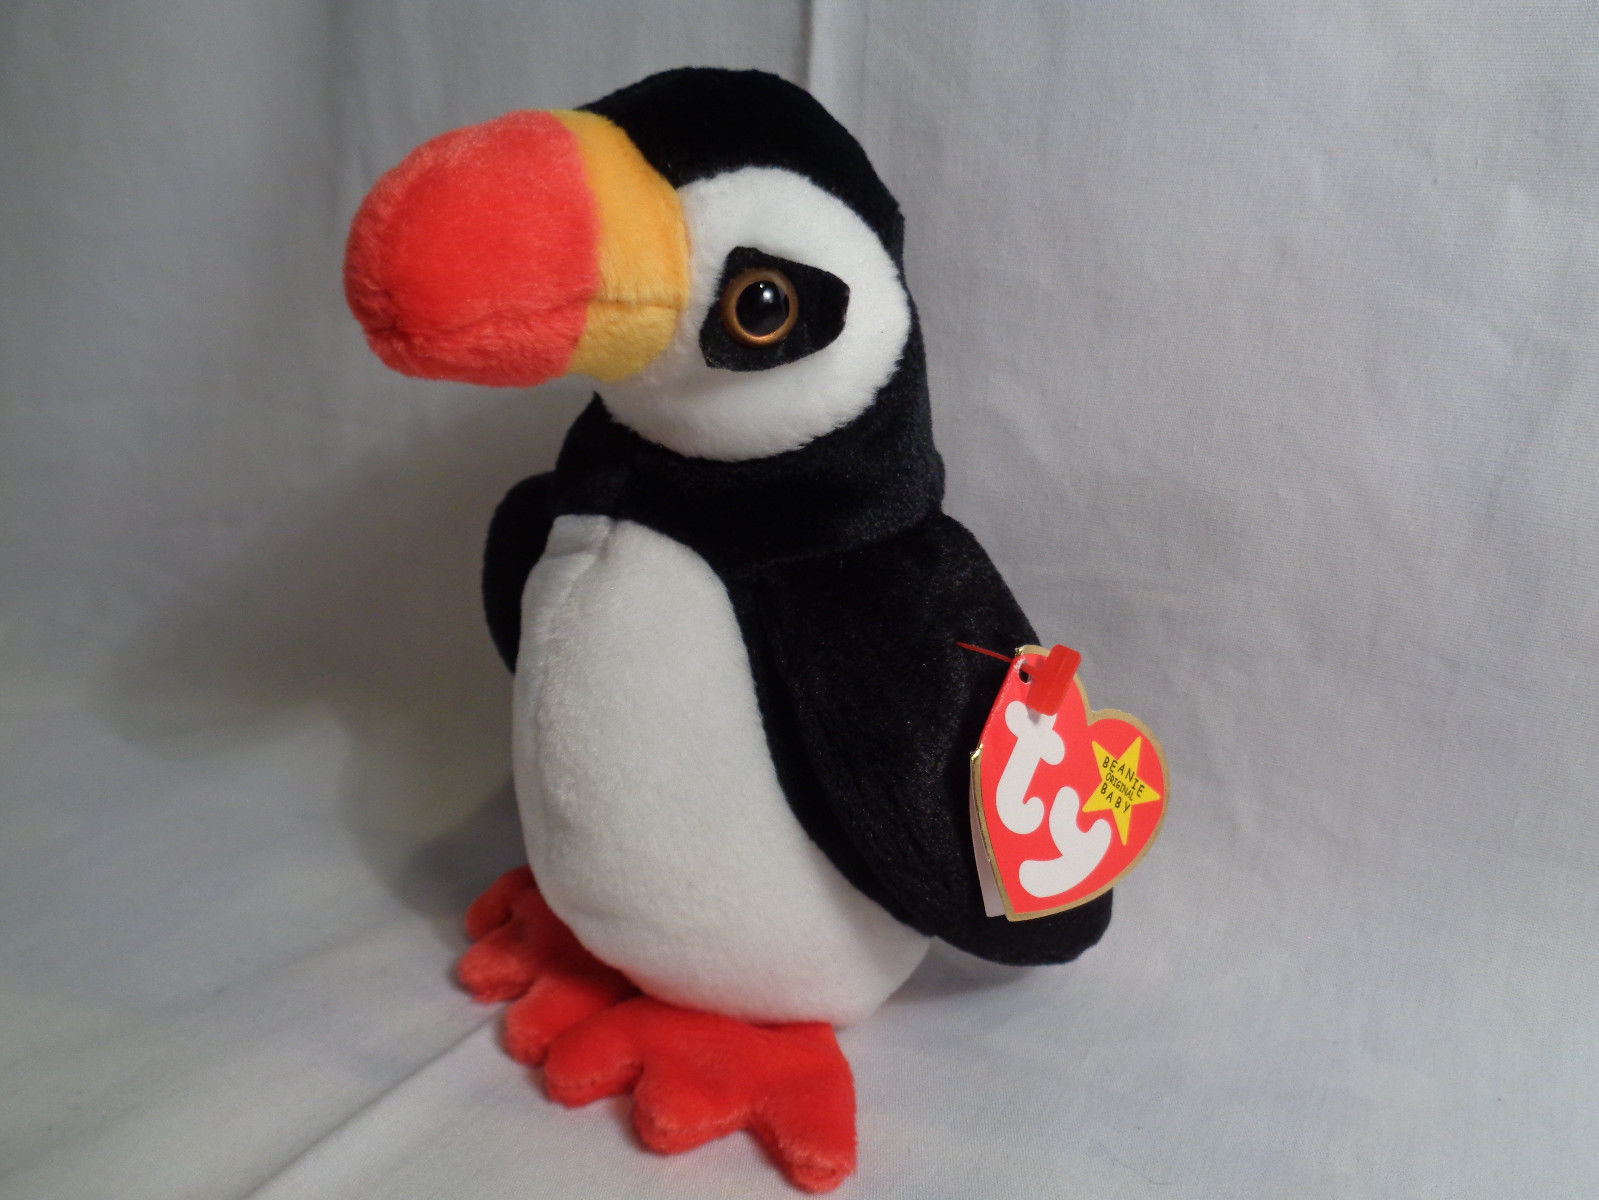 1997 Ty Beanie Baby Puffer with Tags / Stamped Tush Tag image 2